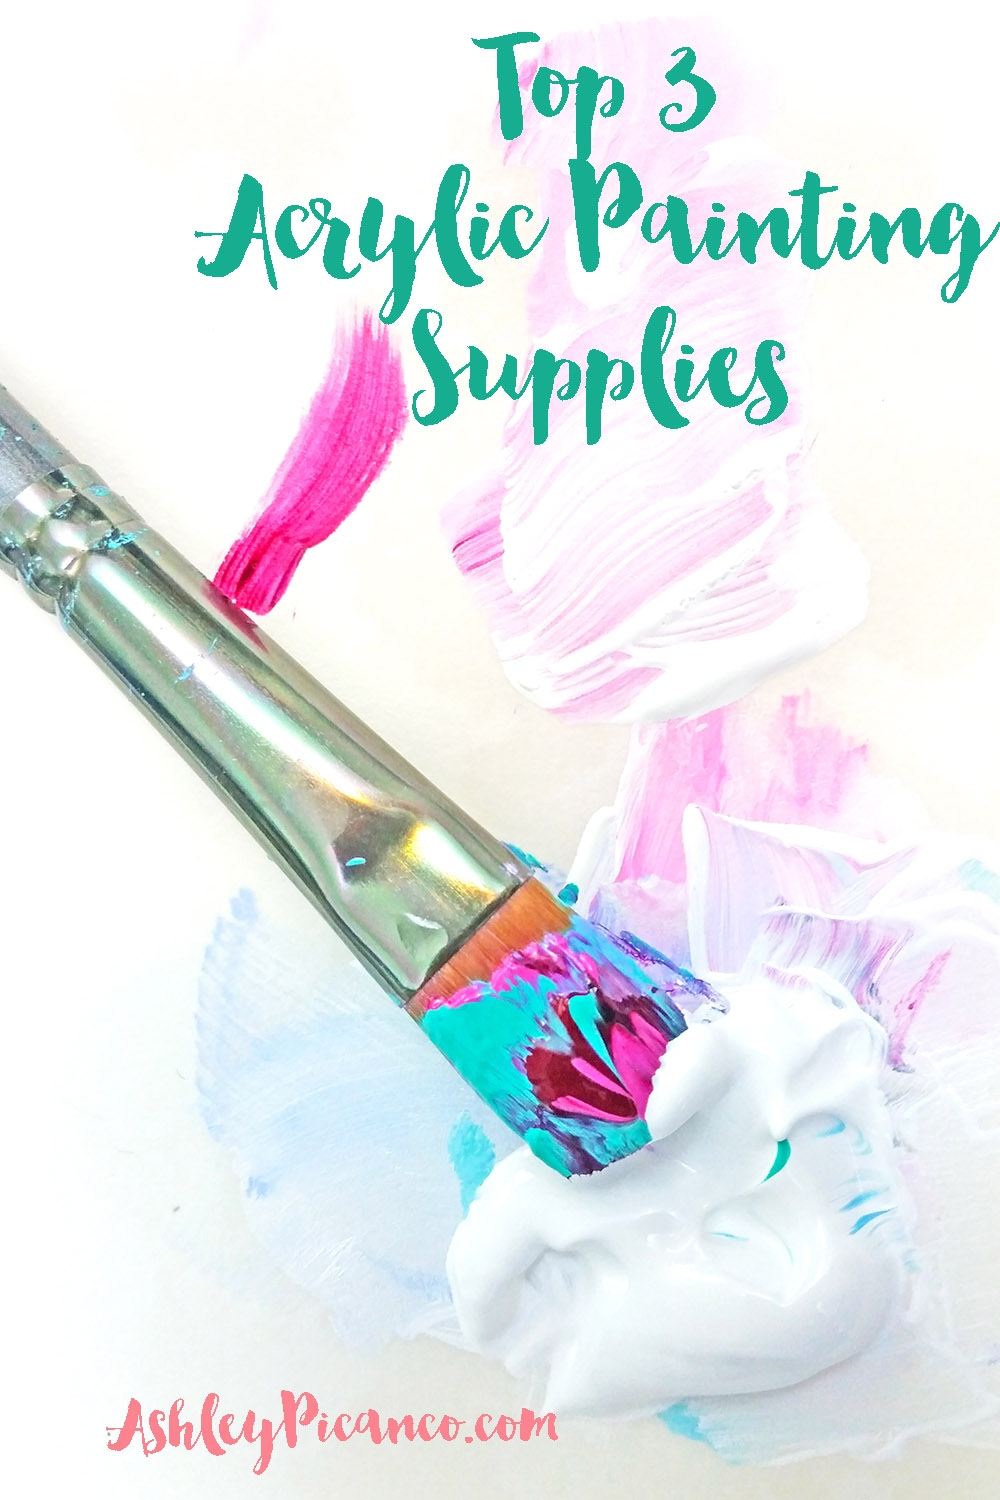 Top 3 Acrylic Painting Supplies